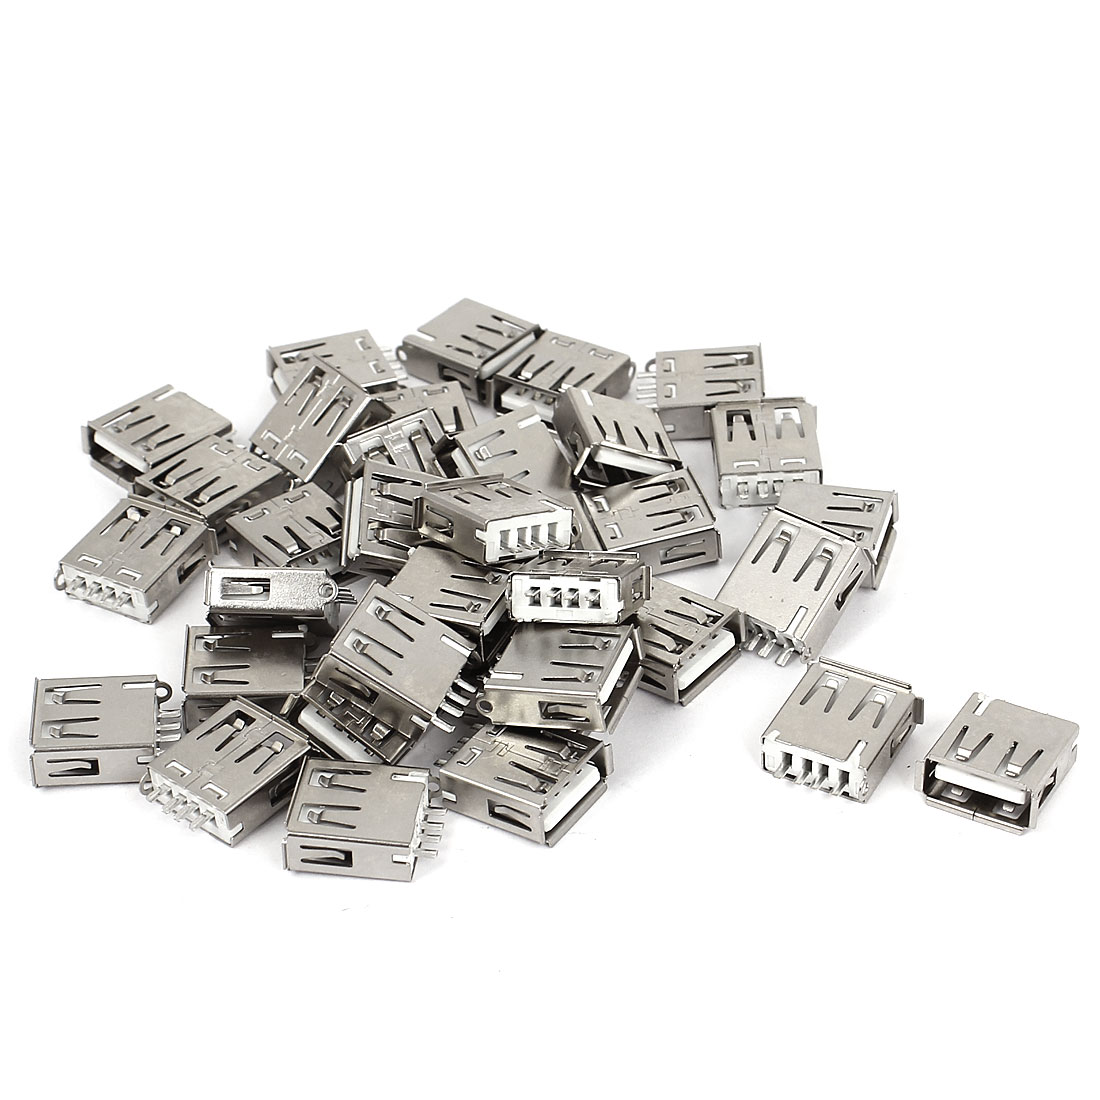 36pcs DIY USB 2.0 Type A Solder 4 Pin Female Jack Connector Socket Adapter